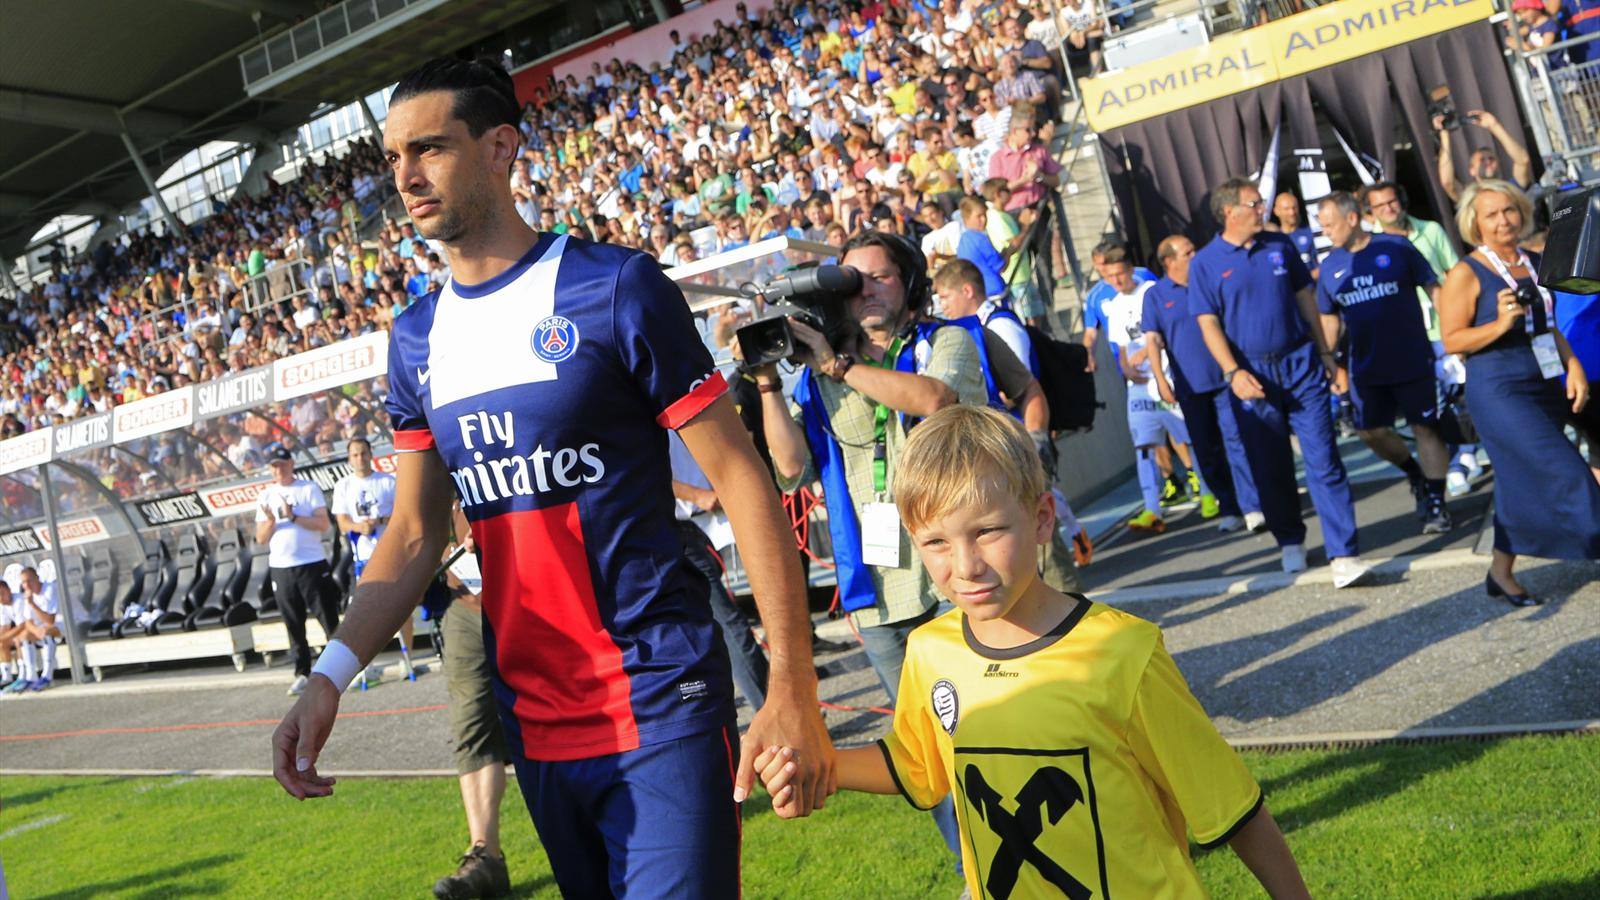 Ligue 2013 14 psg as monaco om les surprises et tendances de la l1 ligue 1 2013 2014 - Coupe de la ligue 2013 14 ...